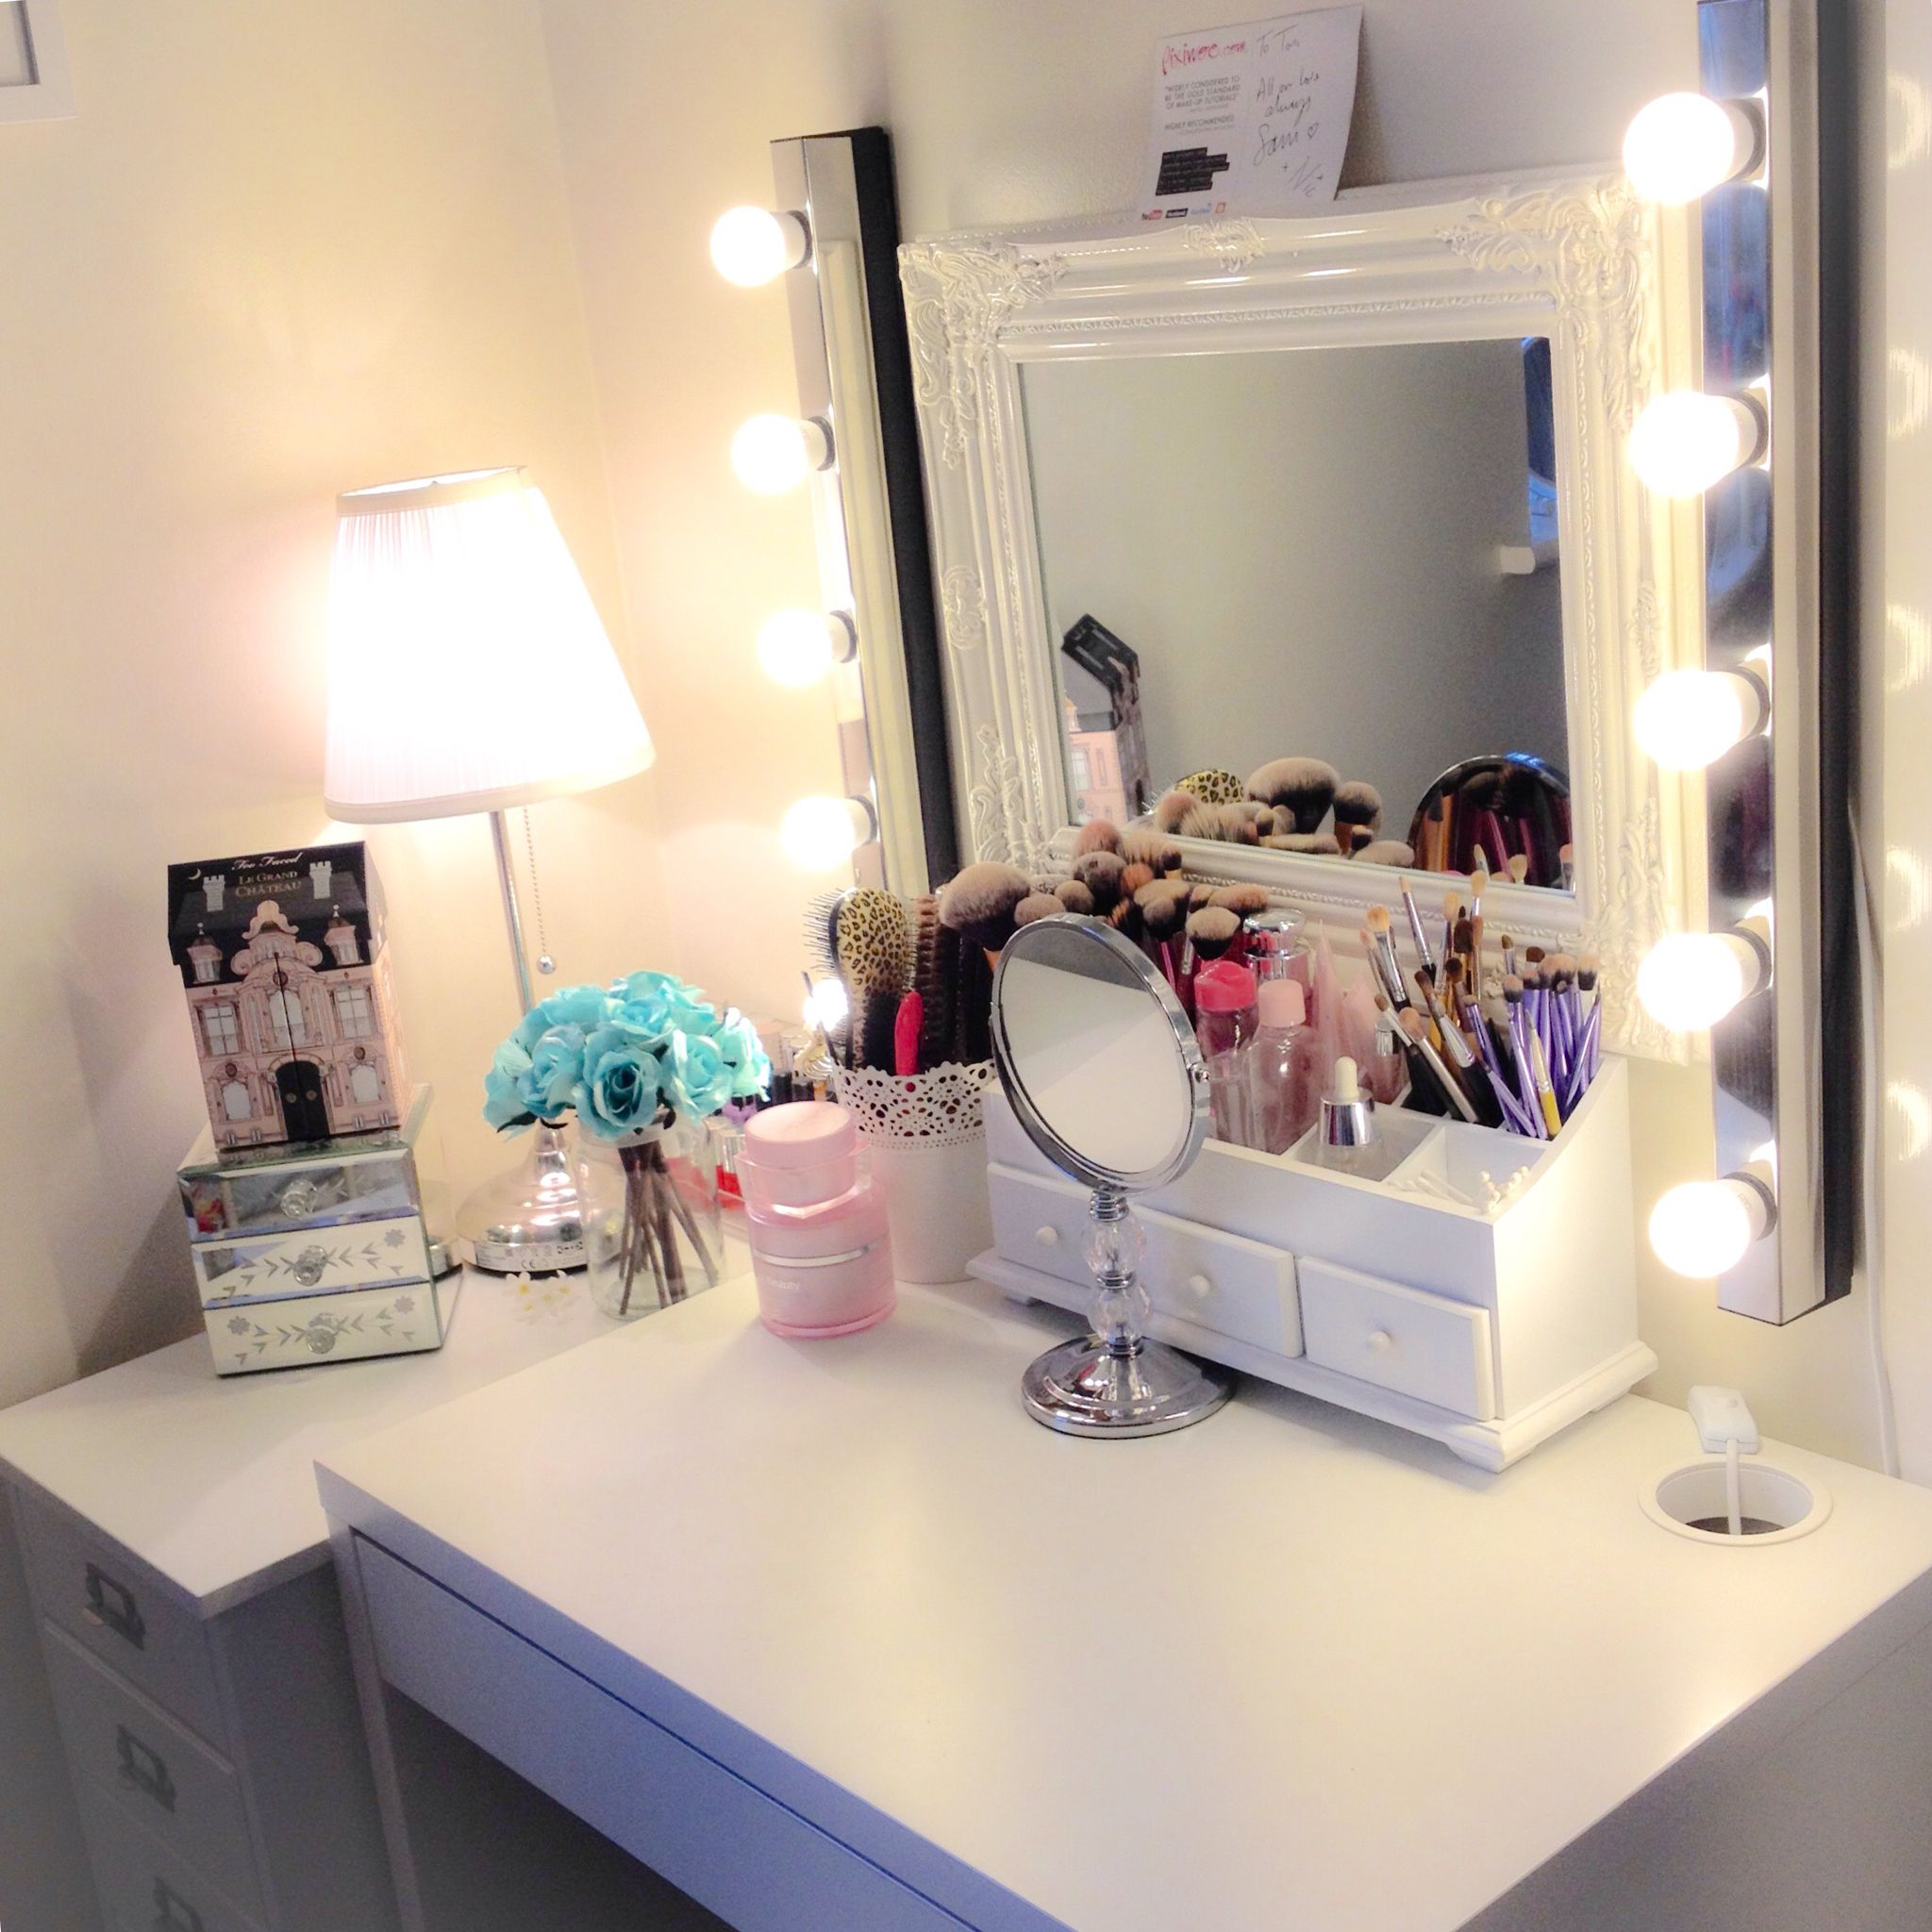 DIY Vanity Room decor, Home decor, Interior